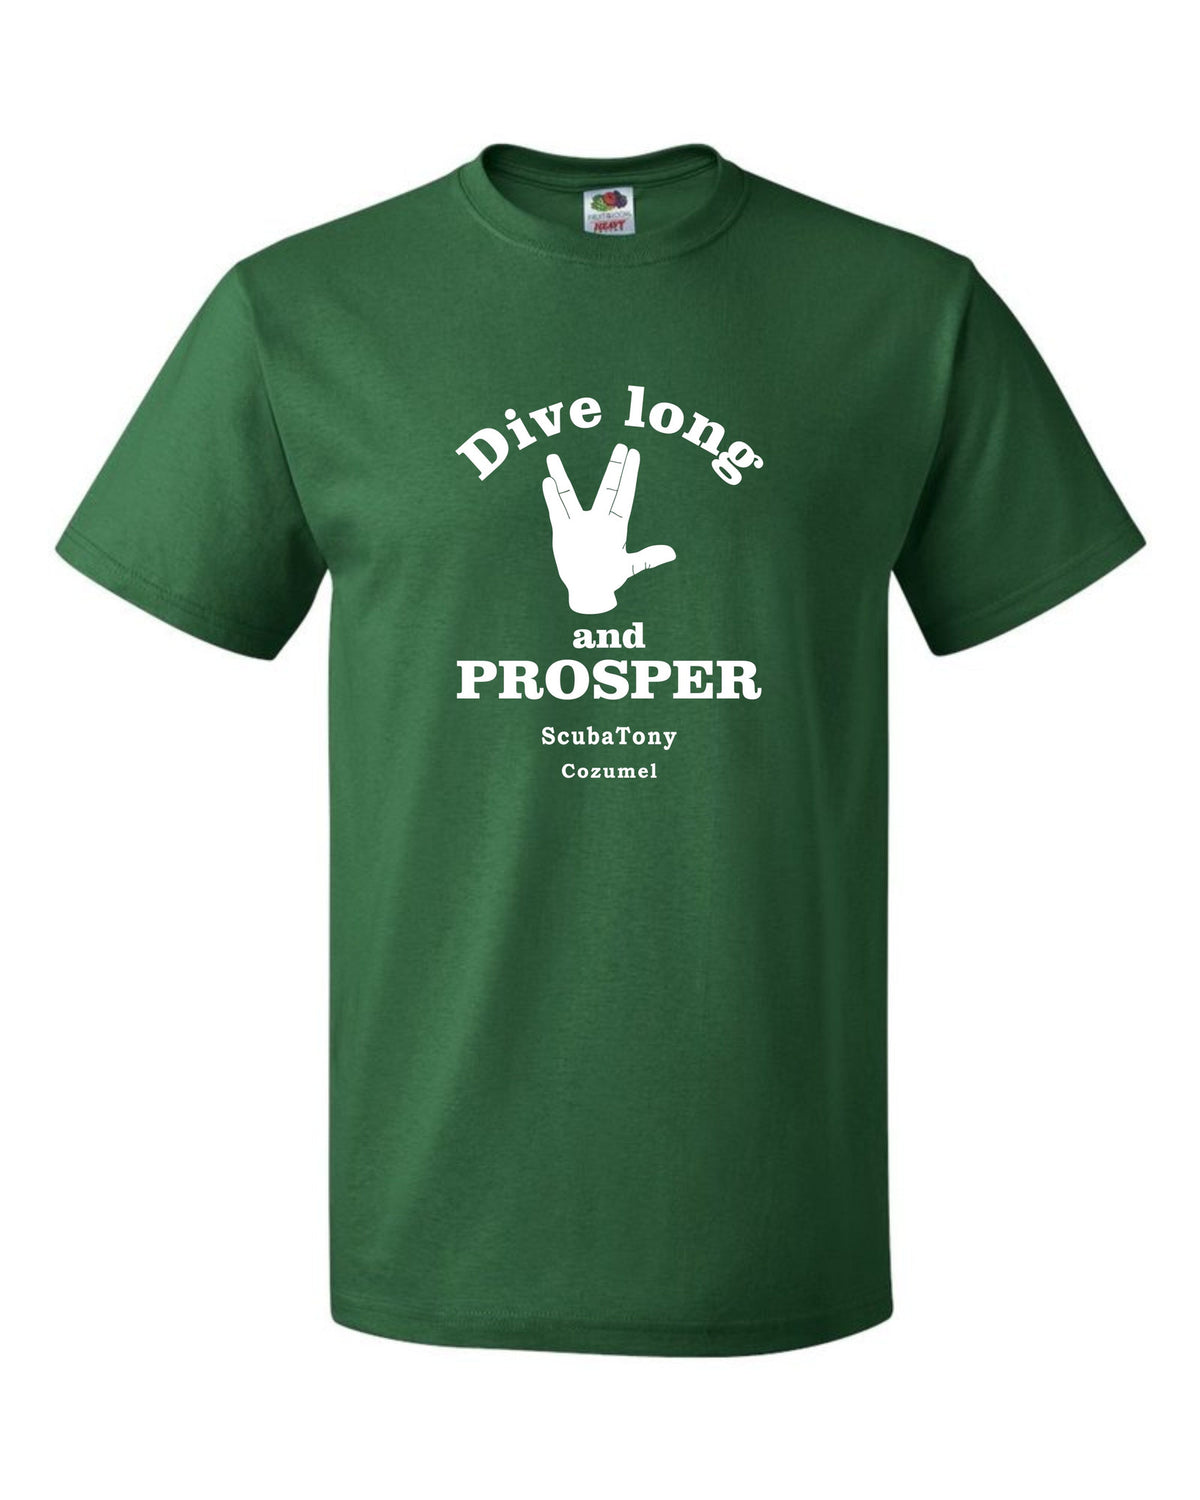 Men's Dive Long and Prosper